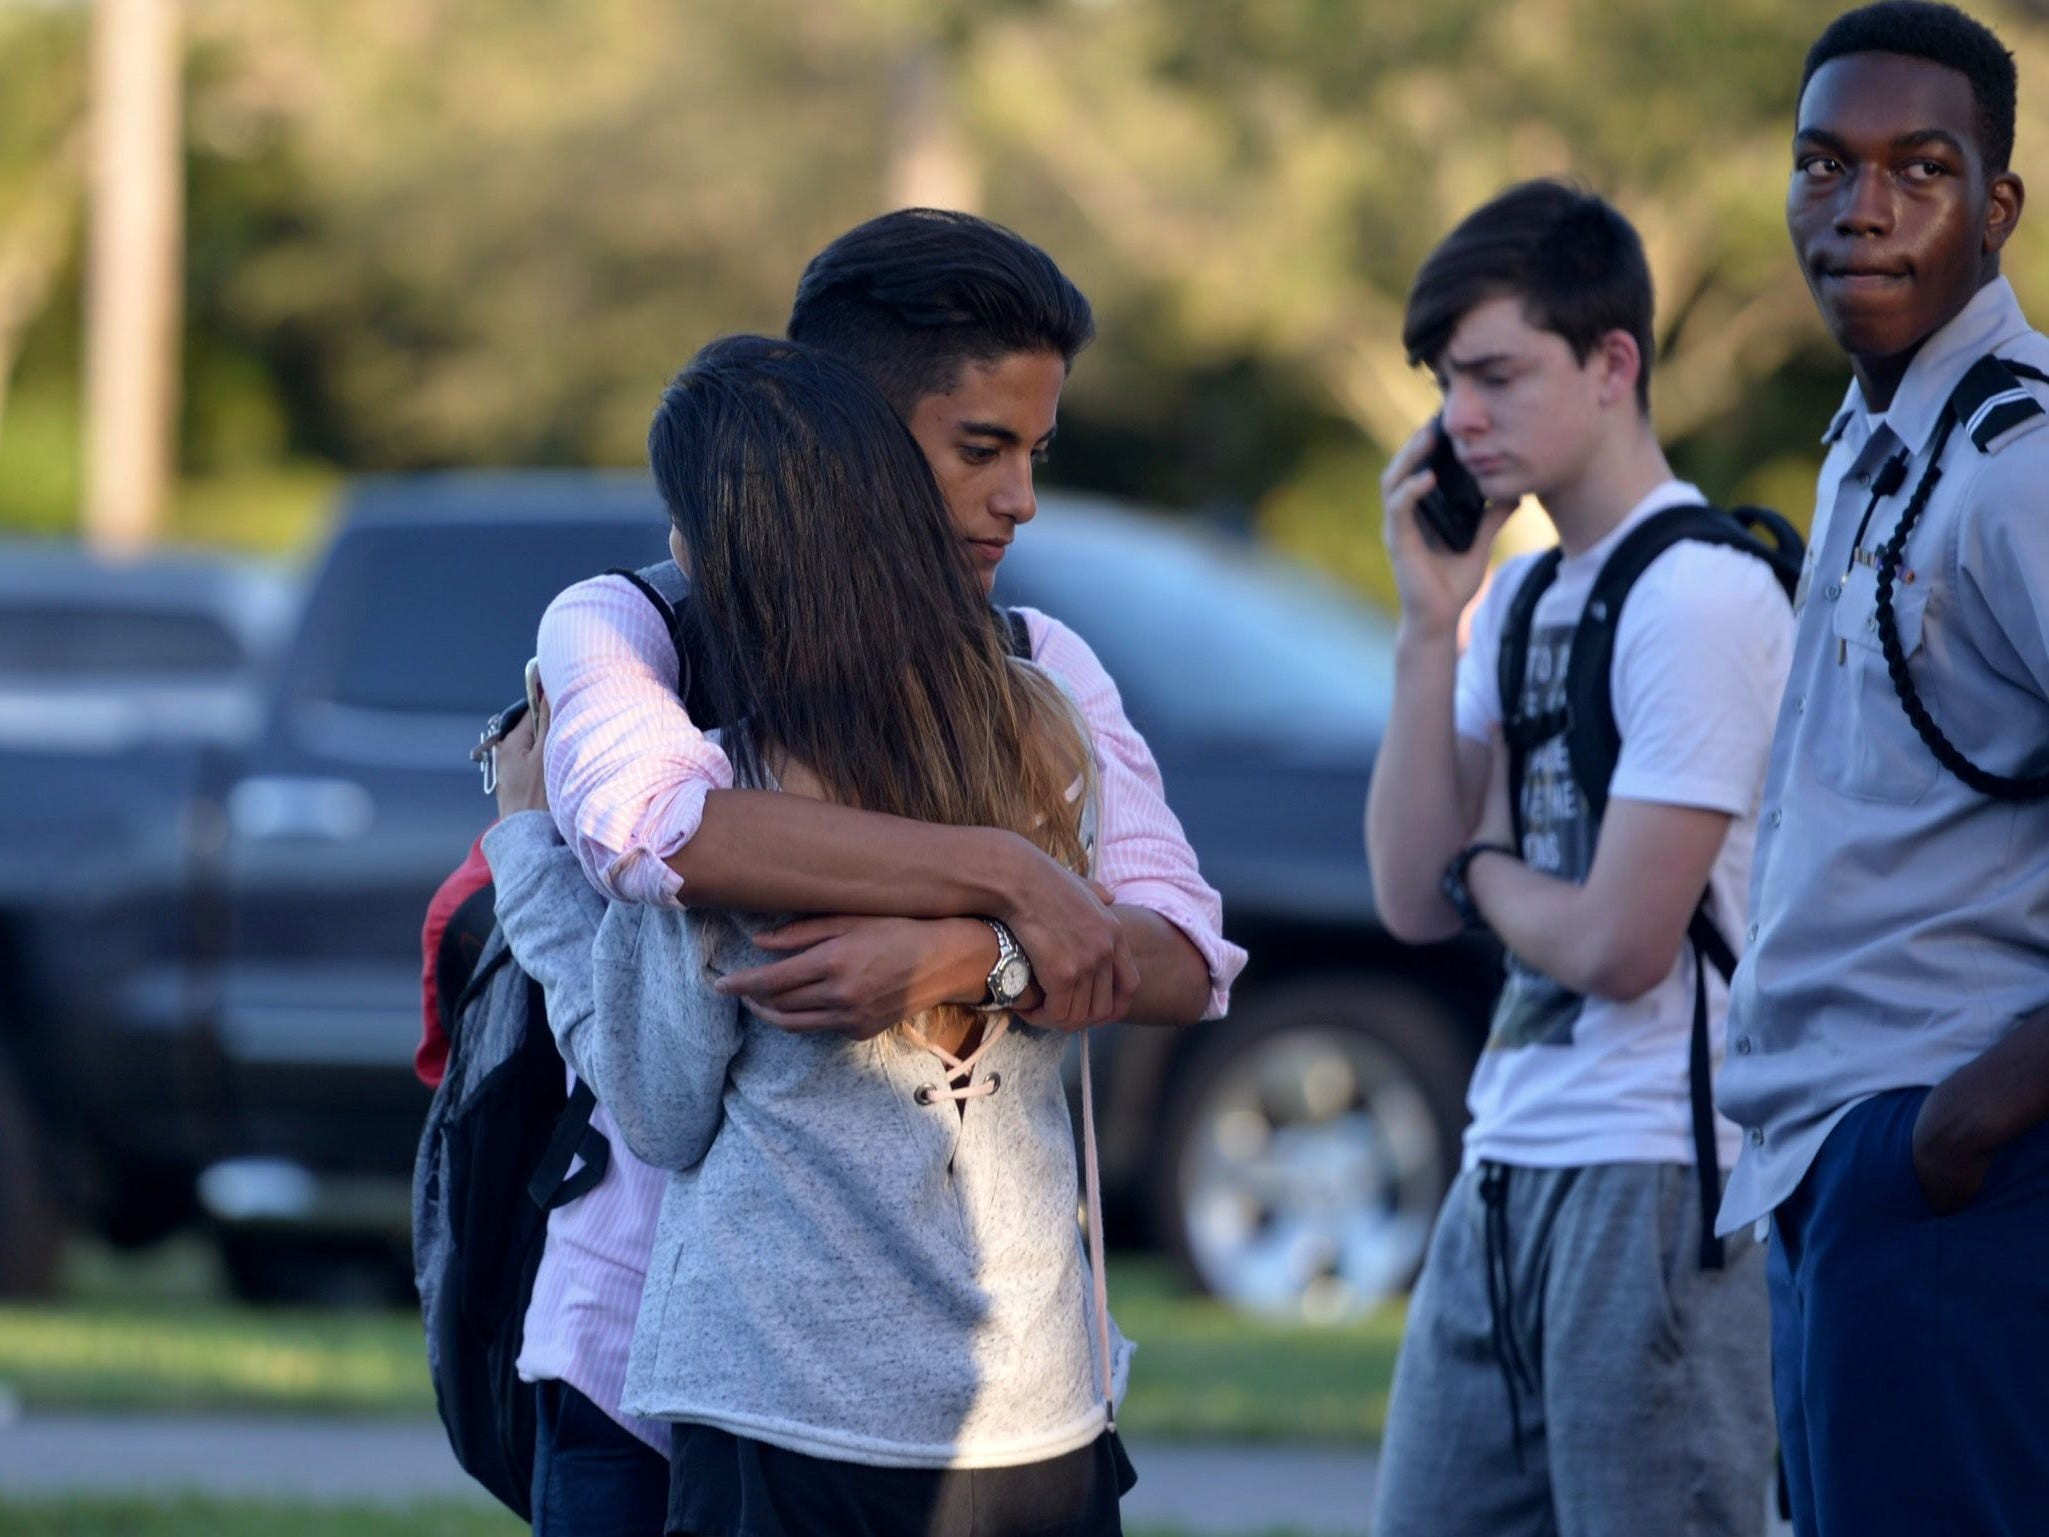 Jorge Zapata, 16, a student at Marjory Stoneman Douglas High School in Parkland, Fla, embraces his mother, Lavinia Zapata, both of Parkland, after a mass shooting on Feb. 14, 2018.